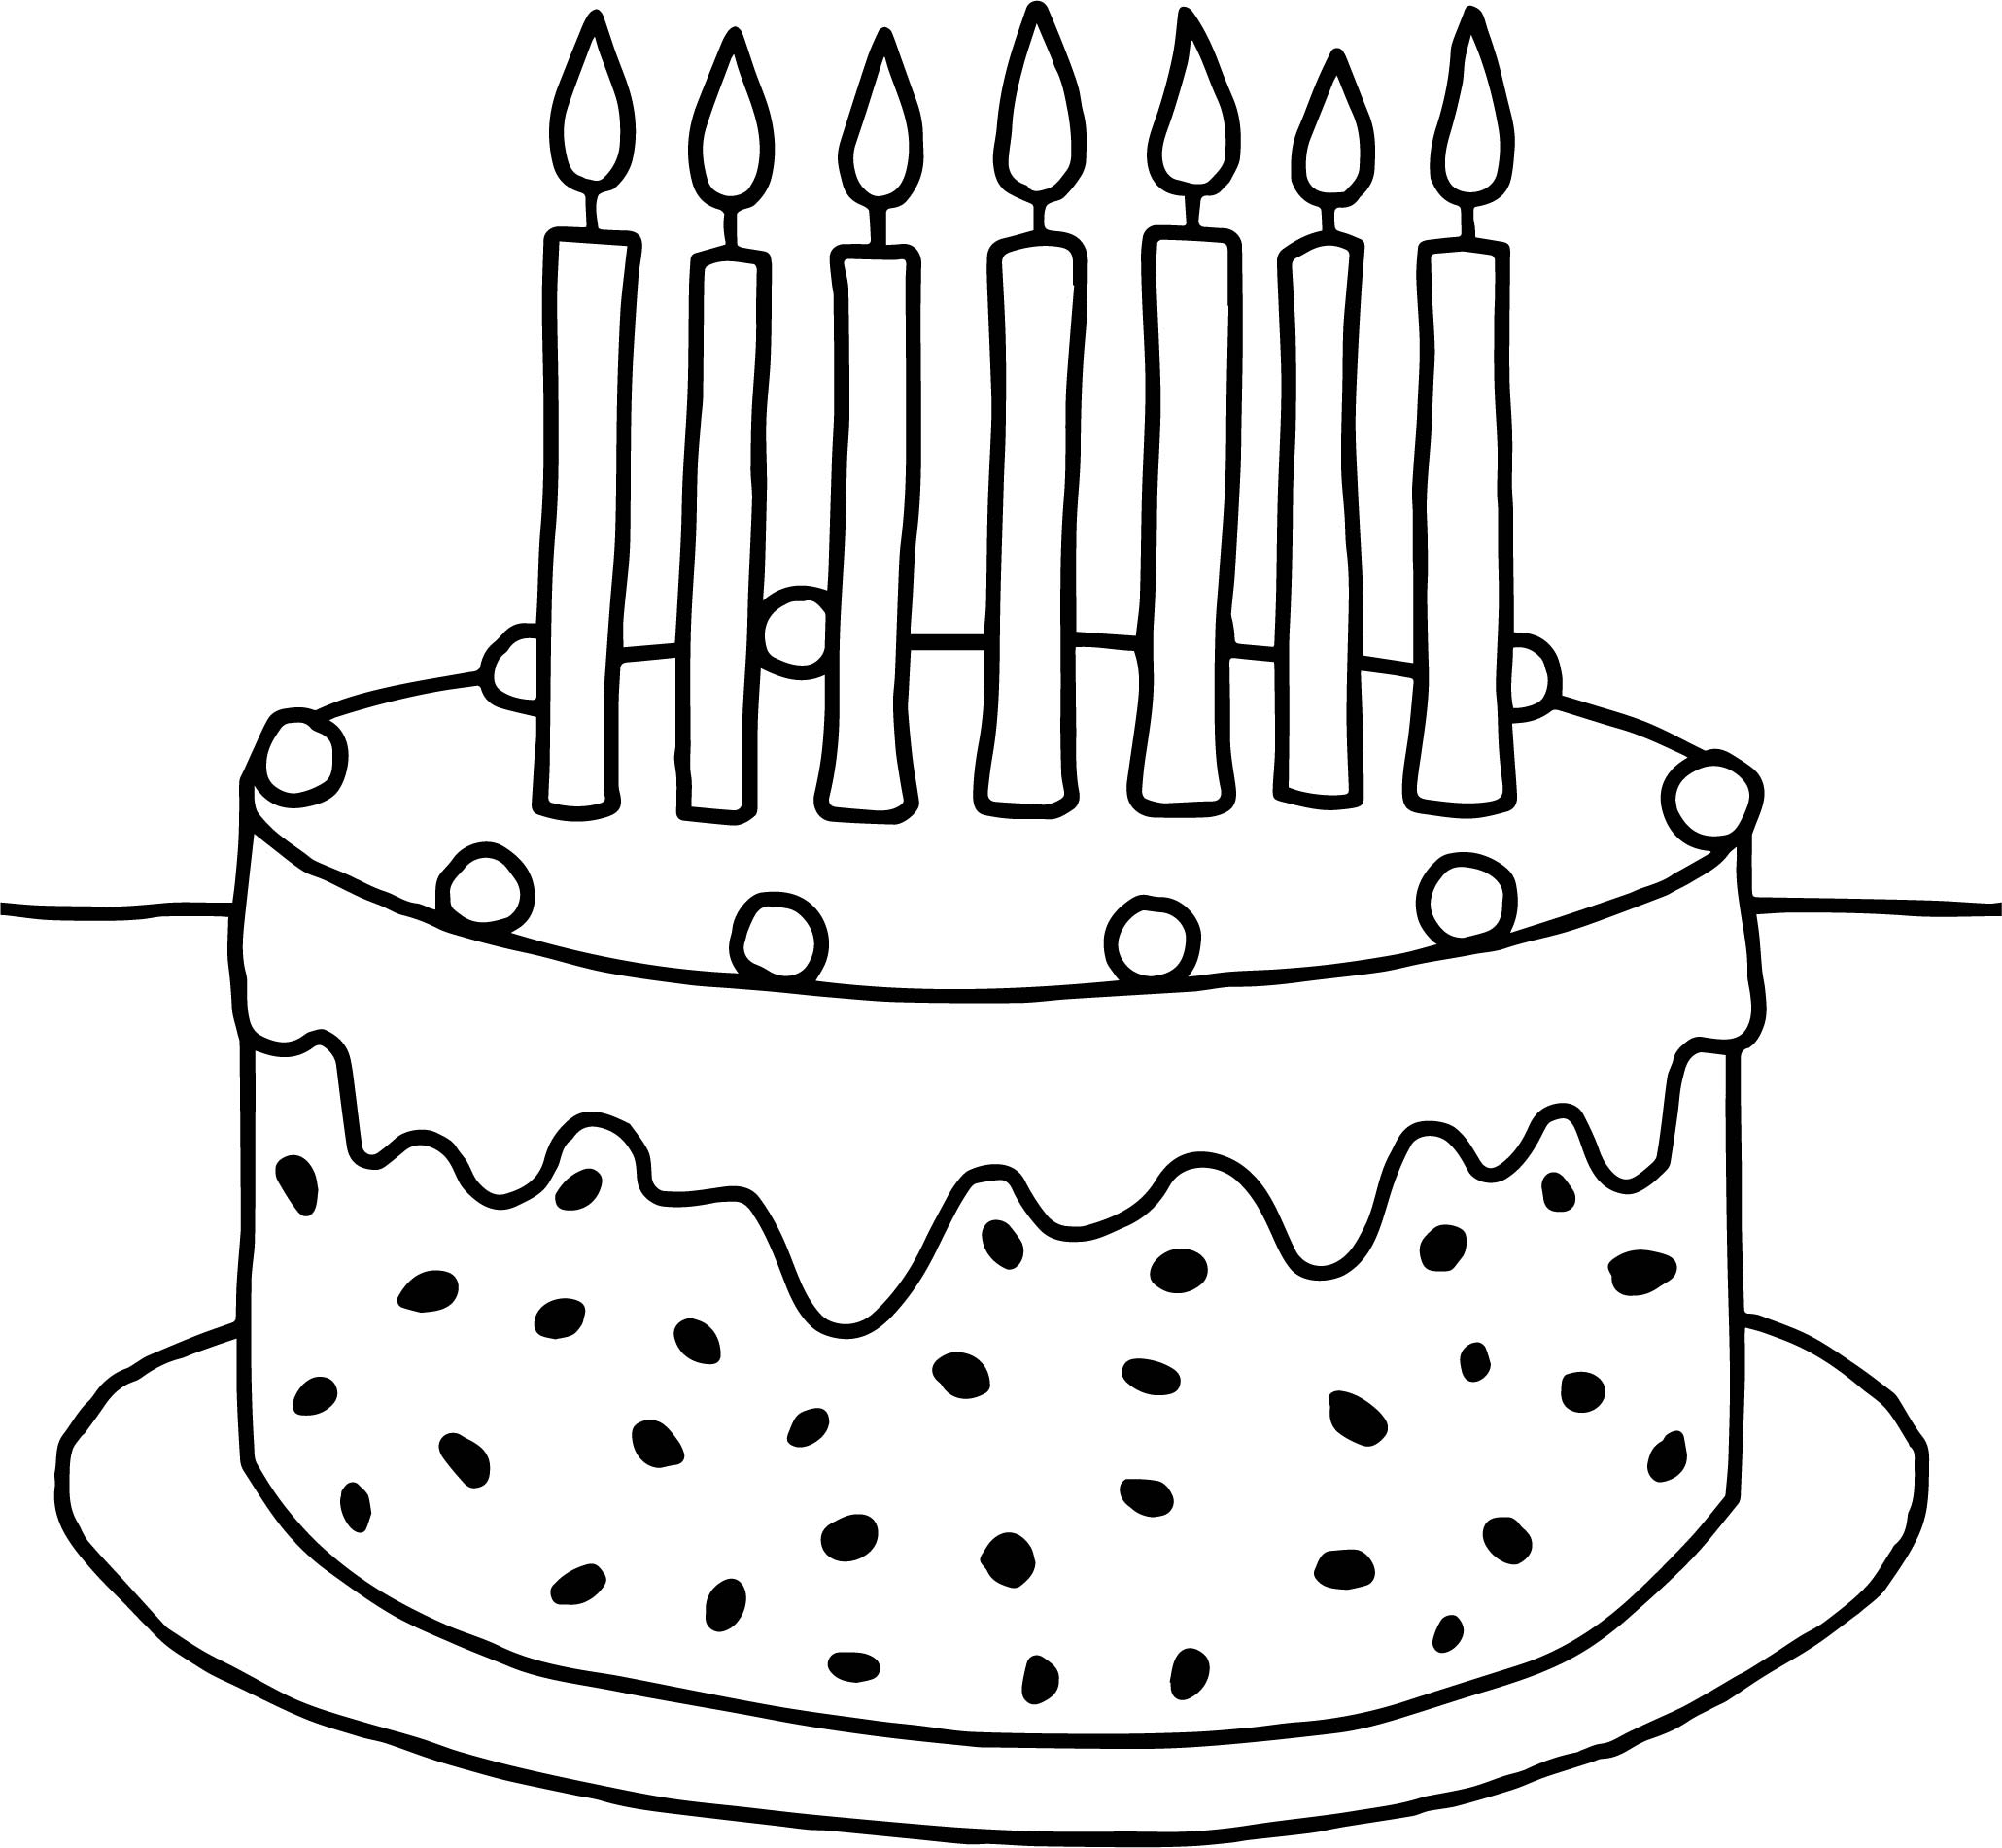 Preschool birthday cake coloring pages for Preschool coloring pages